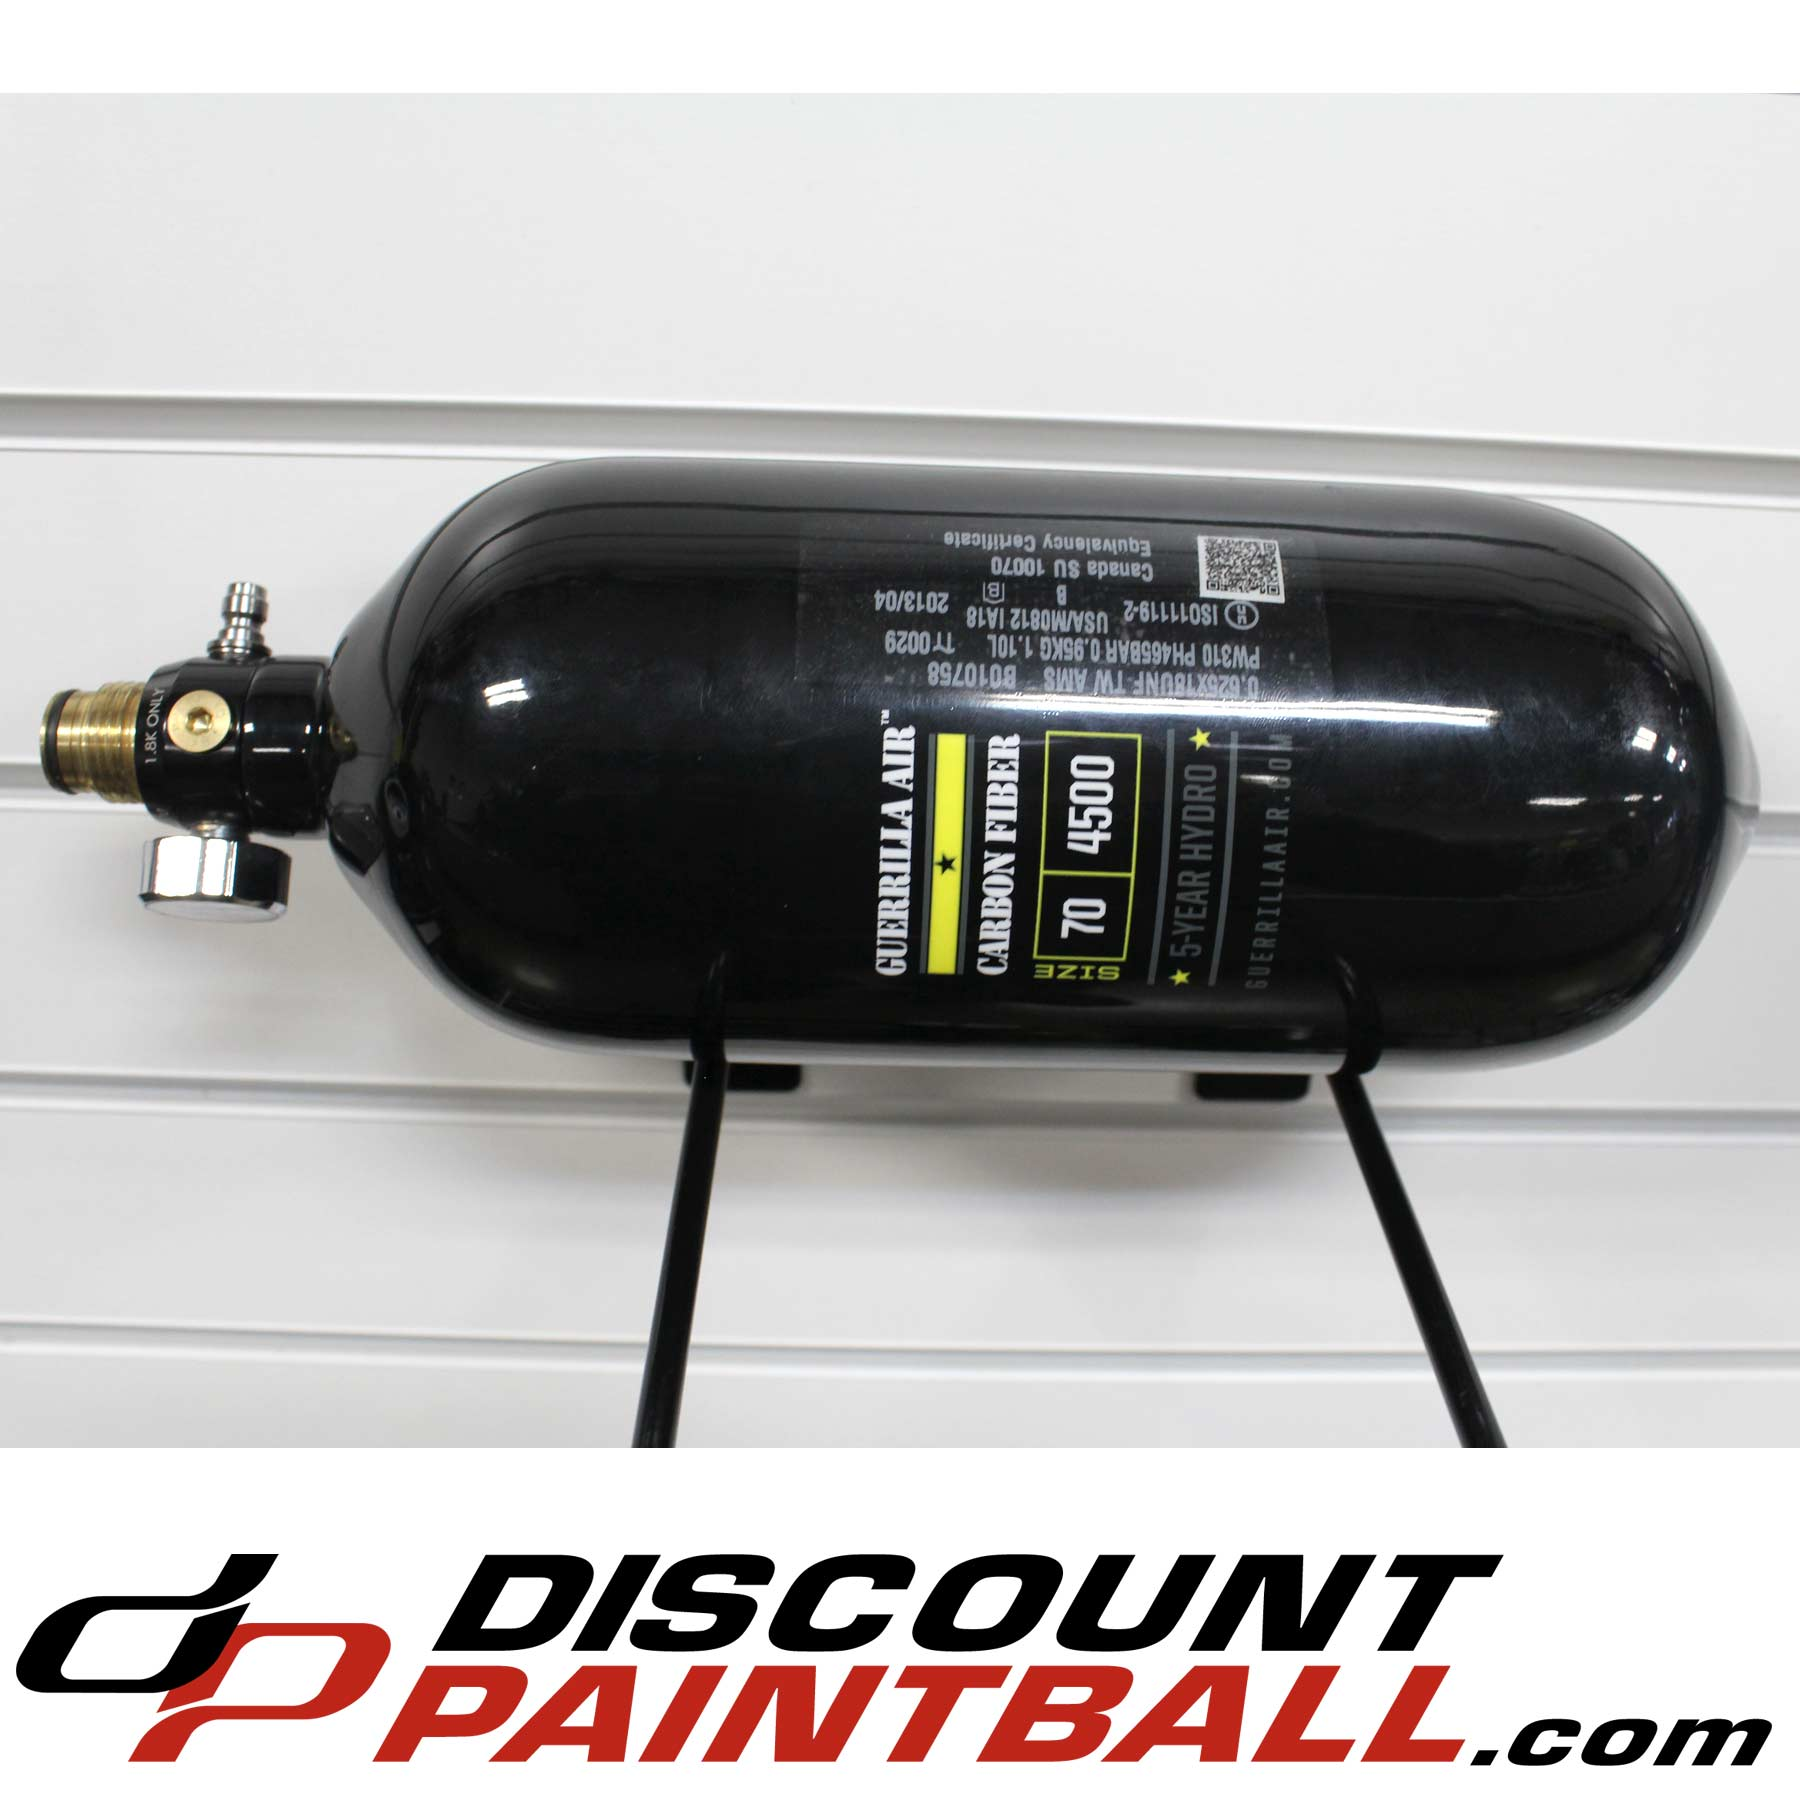 Guerrilla Air 77 ci 4500 psi Carbon Fiber Compressed Air Tank Black (exp  04/2018) *Used*